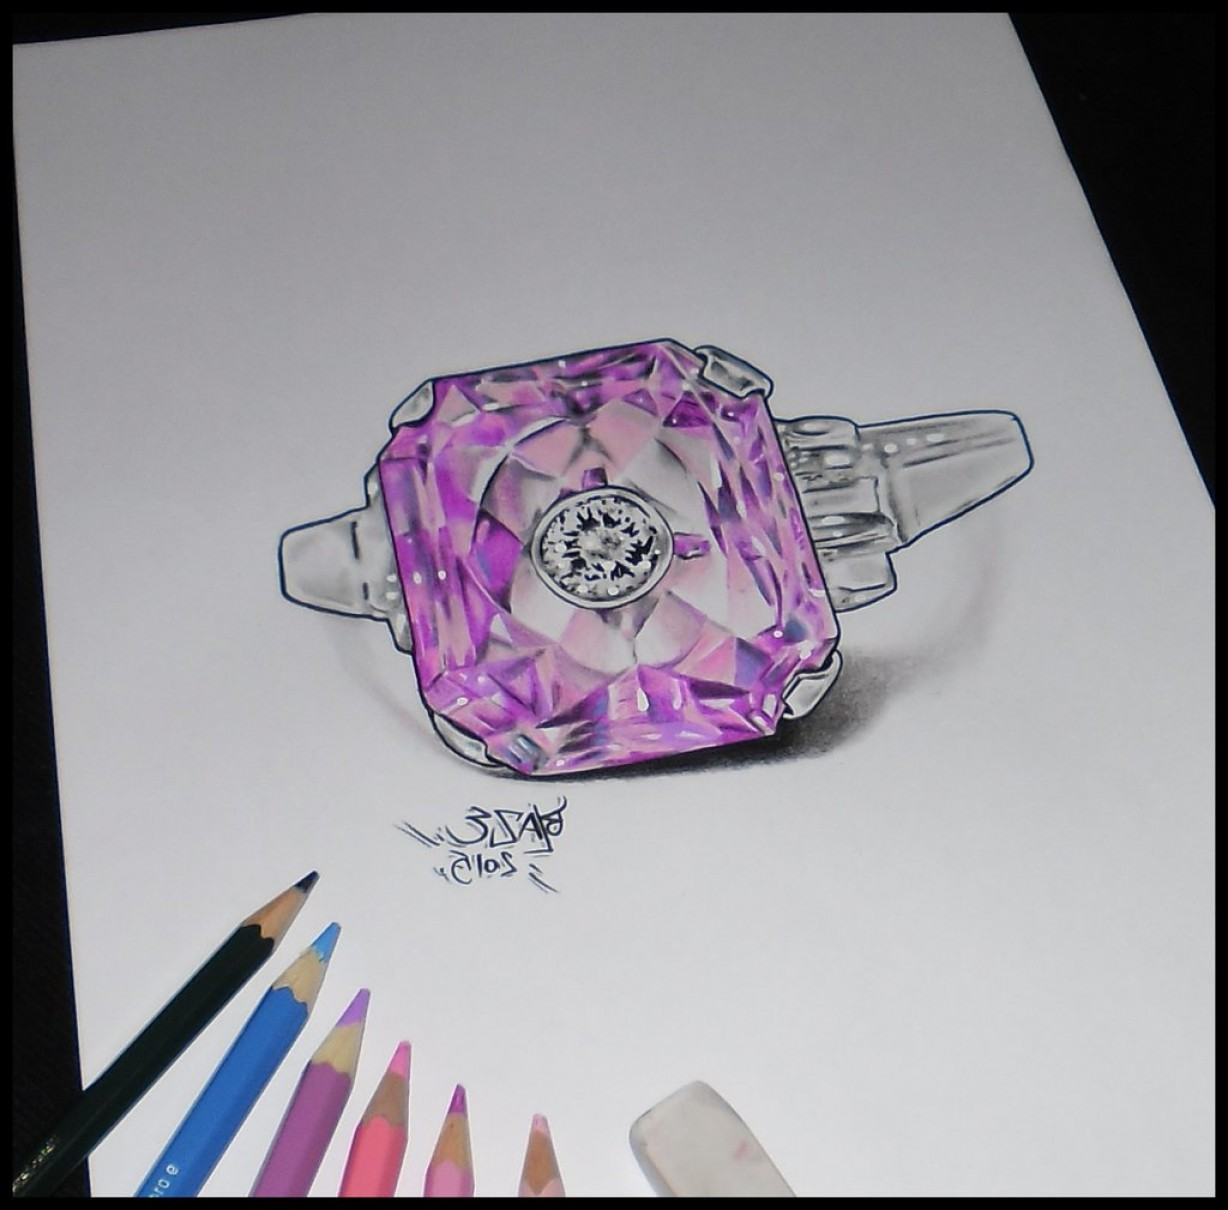 Diamond Pencil Drawing At Getdrawings Com Free For Personal Use